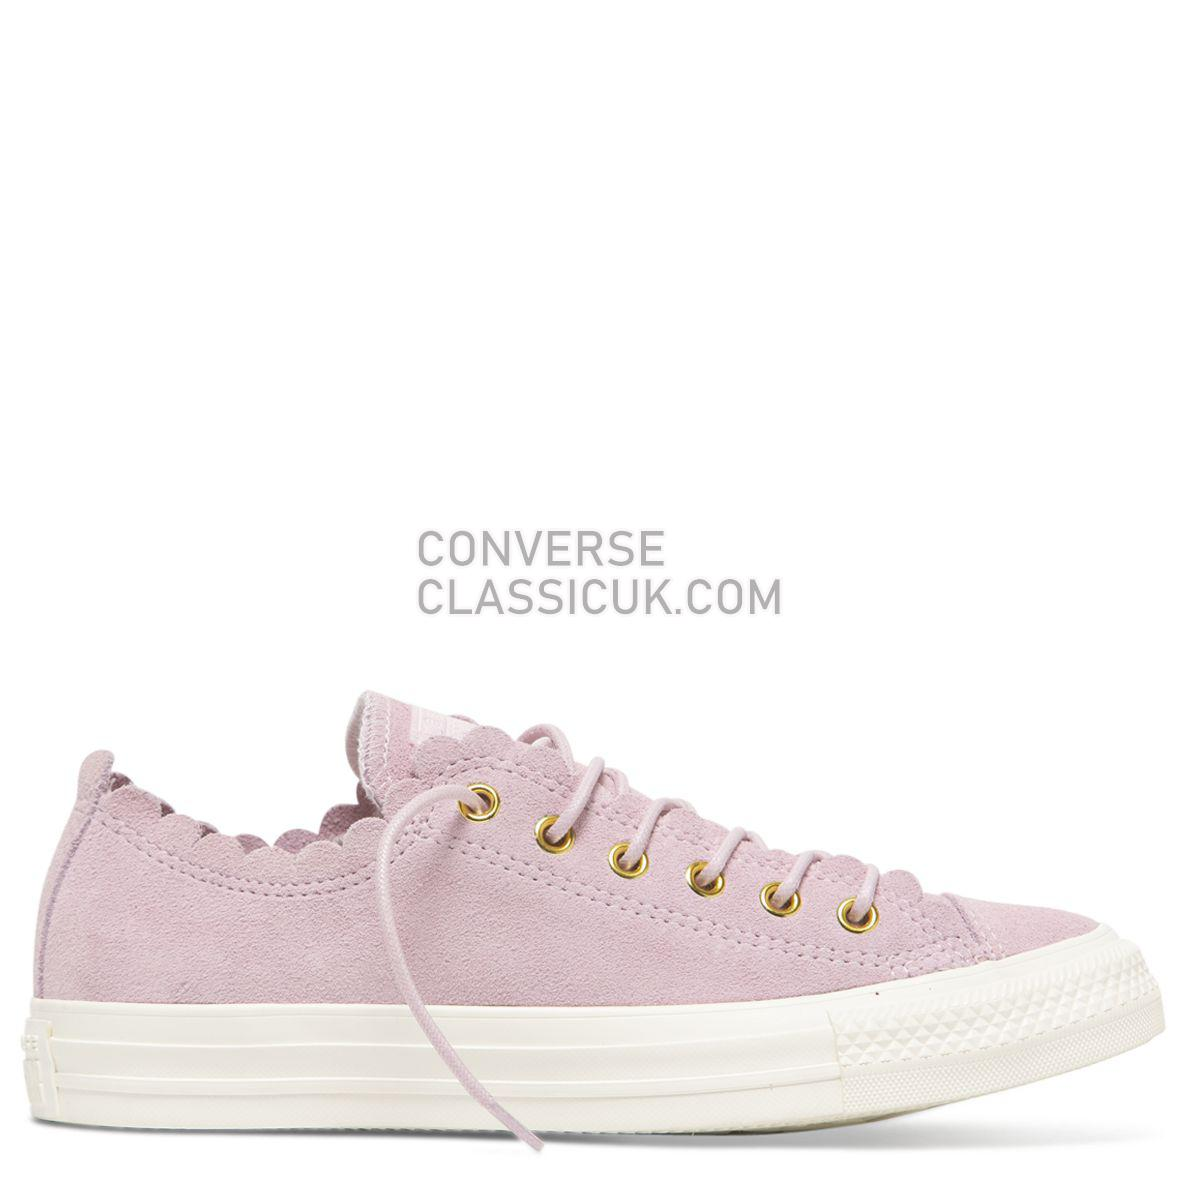 Converse Chuck Taylor All Star Frilly Thrills Low Top Pink Foam Womens 563416 Pink Foam/Gold/Egret Shoes